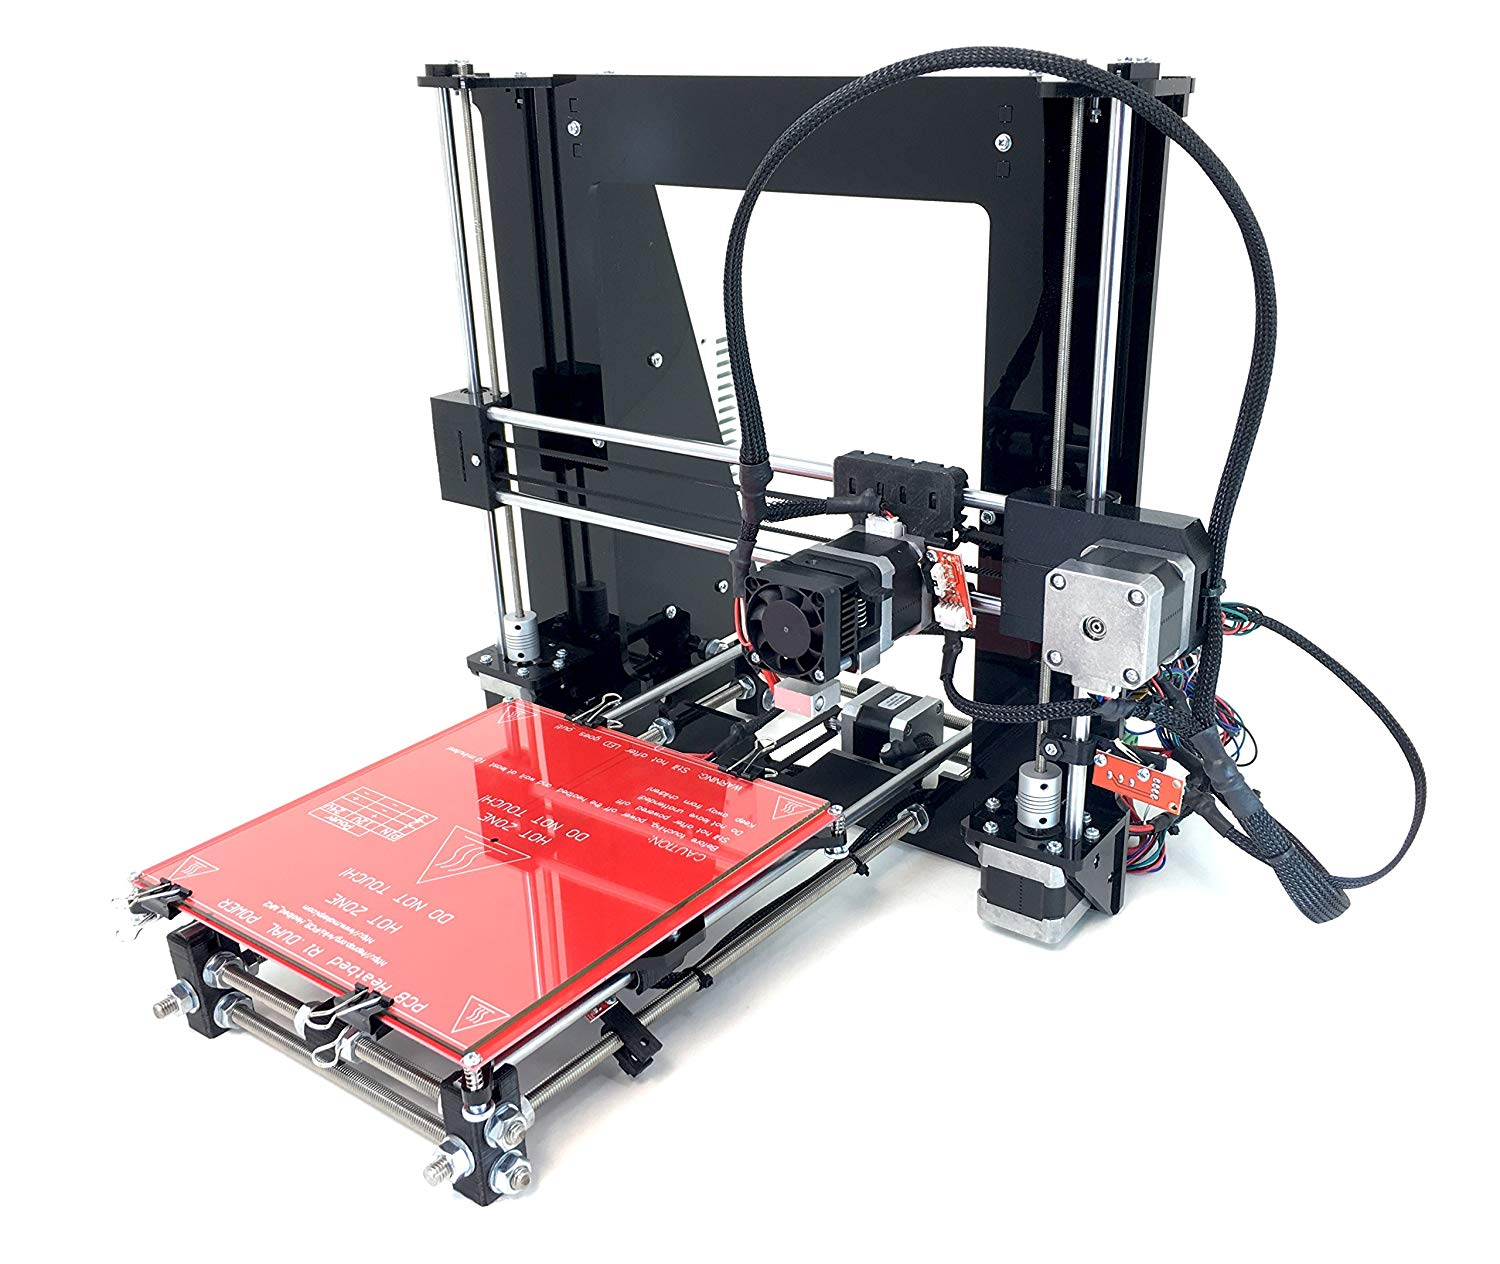 diy 3d printer, 3d printer kit, best 3d printer kit, best diy 3d printer